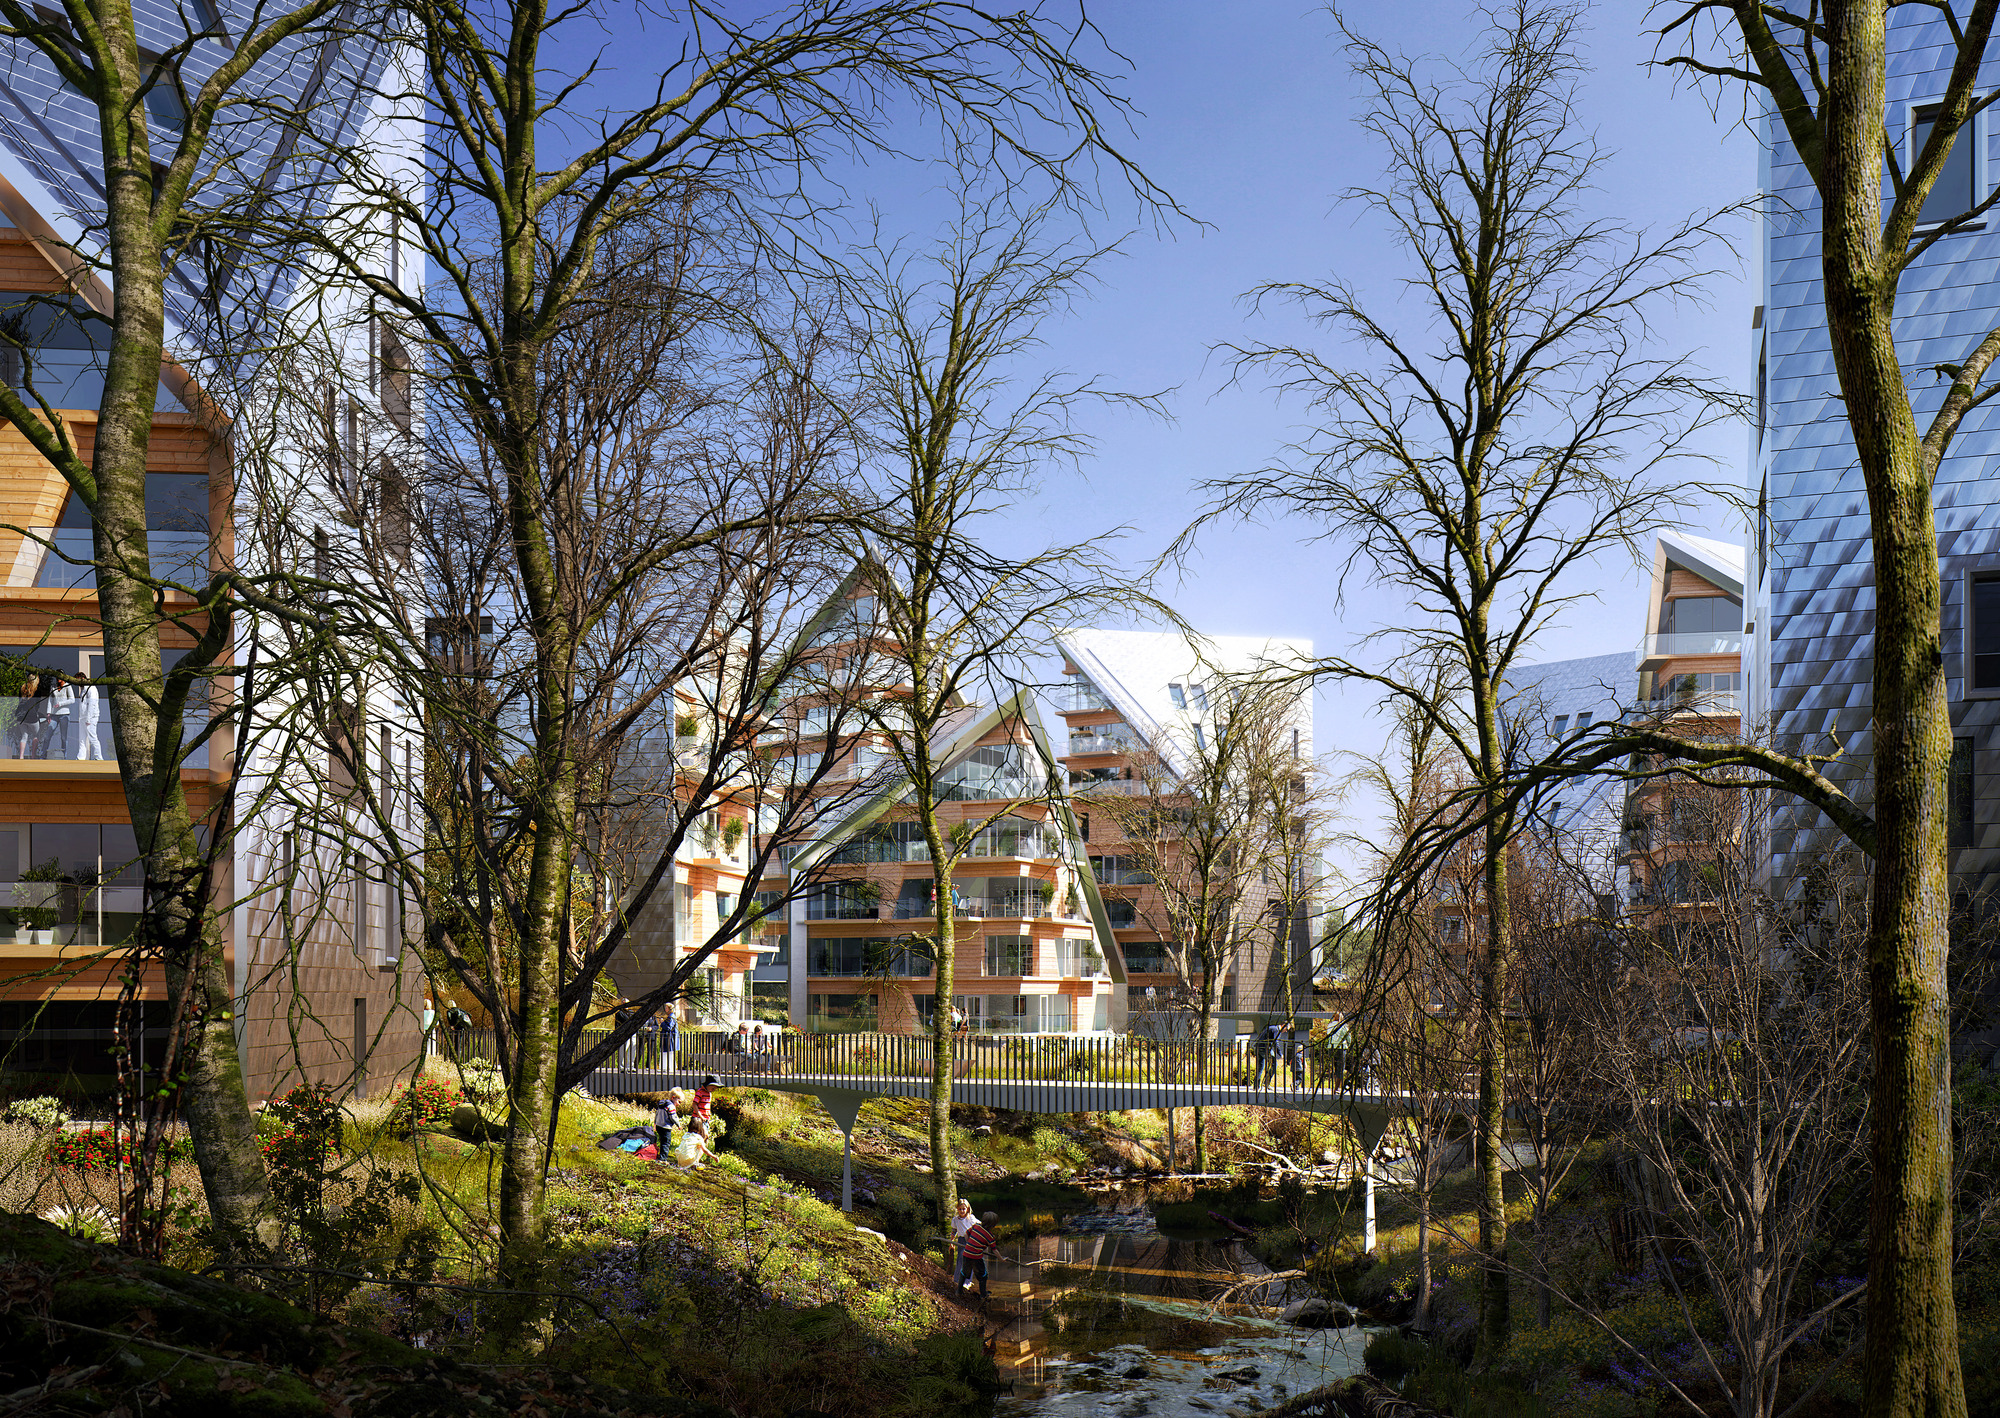 Gallery of Utopia Arkitekter Proposes a Green GrowthRing